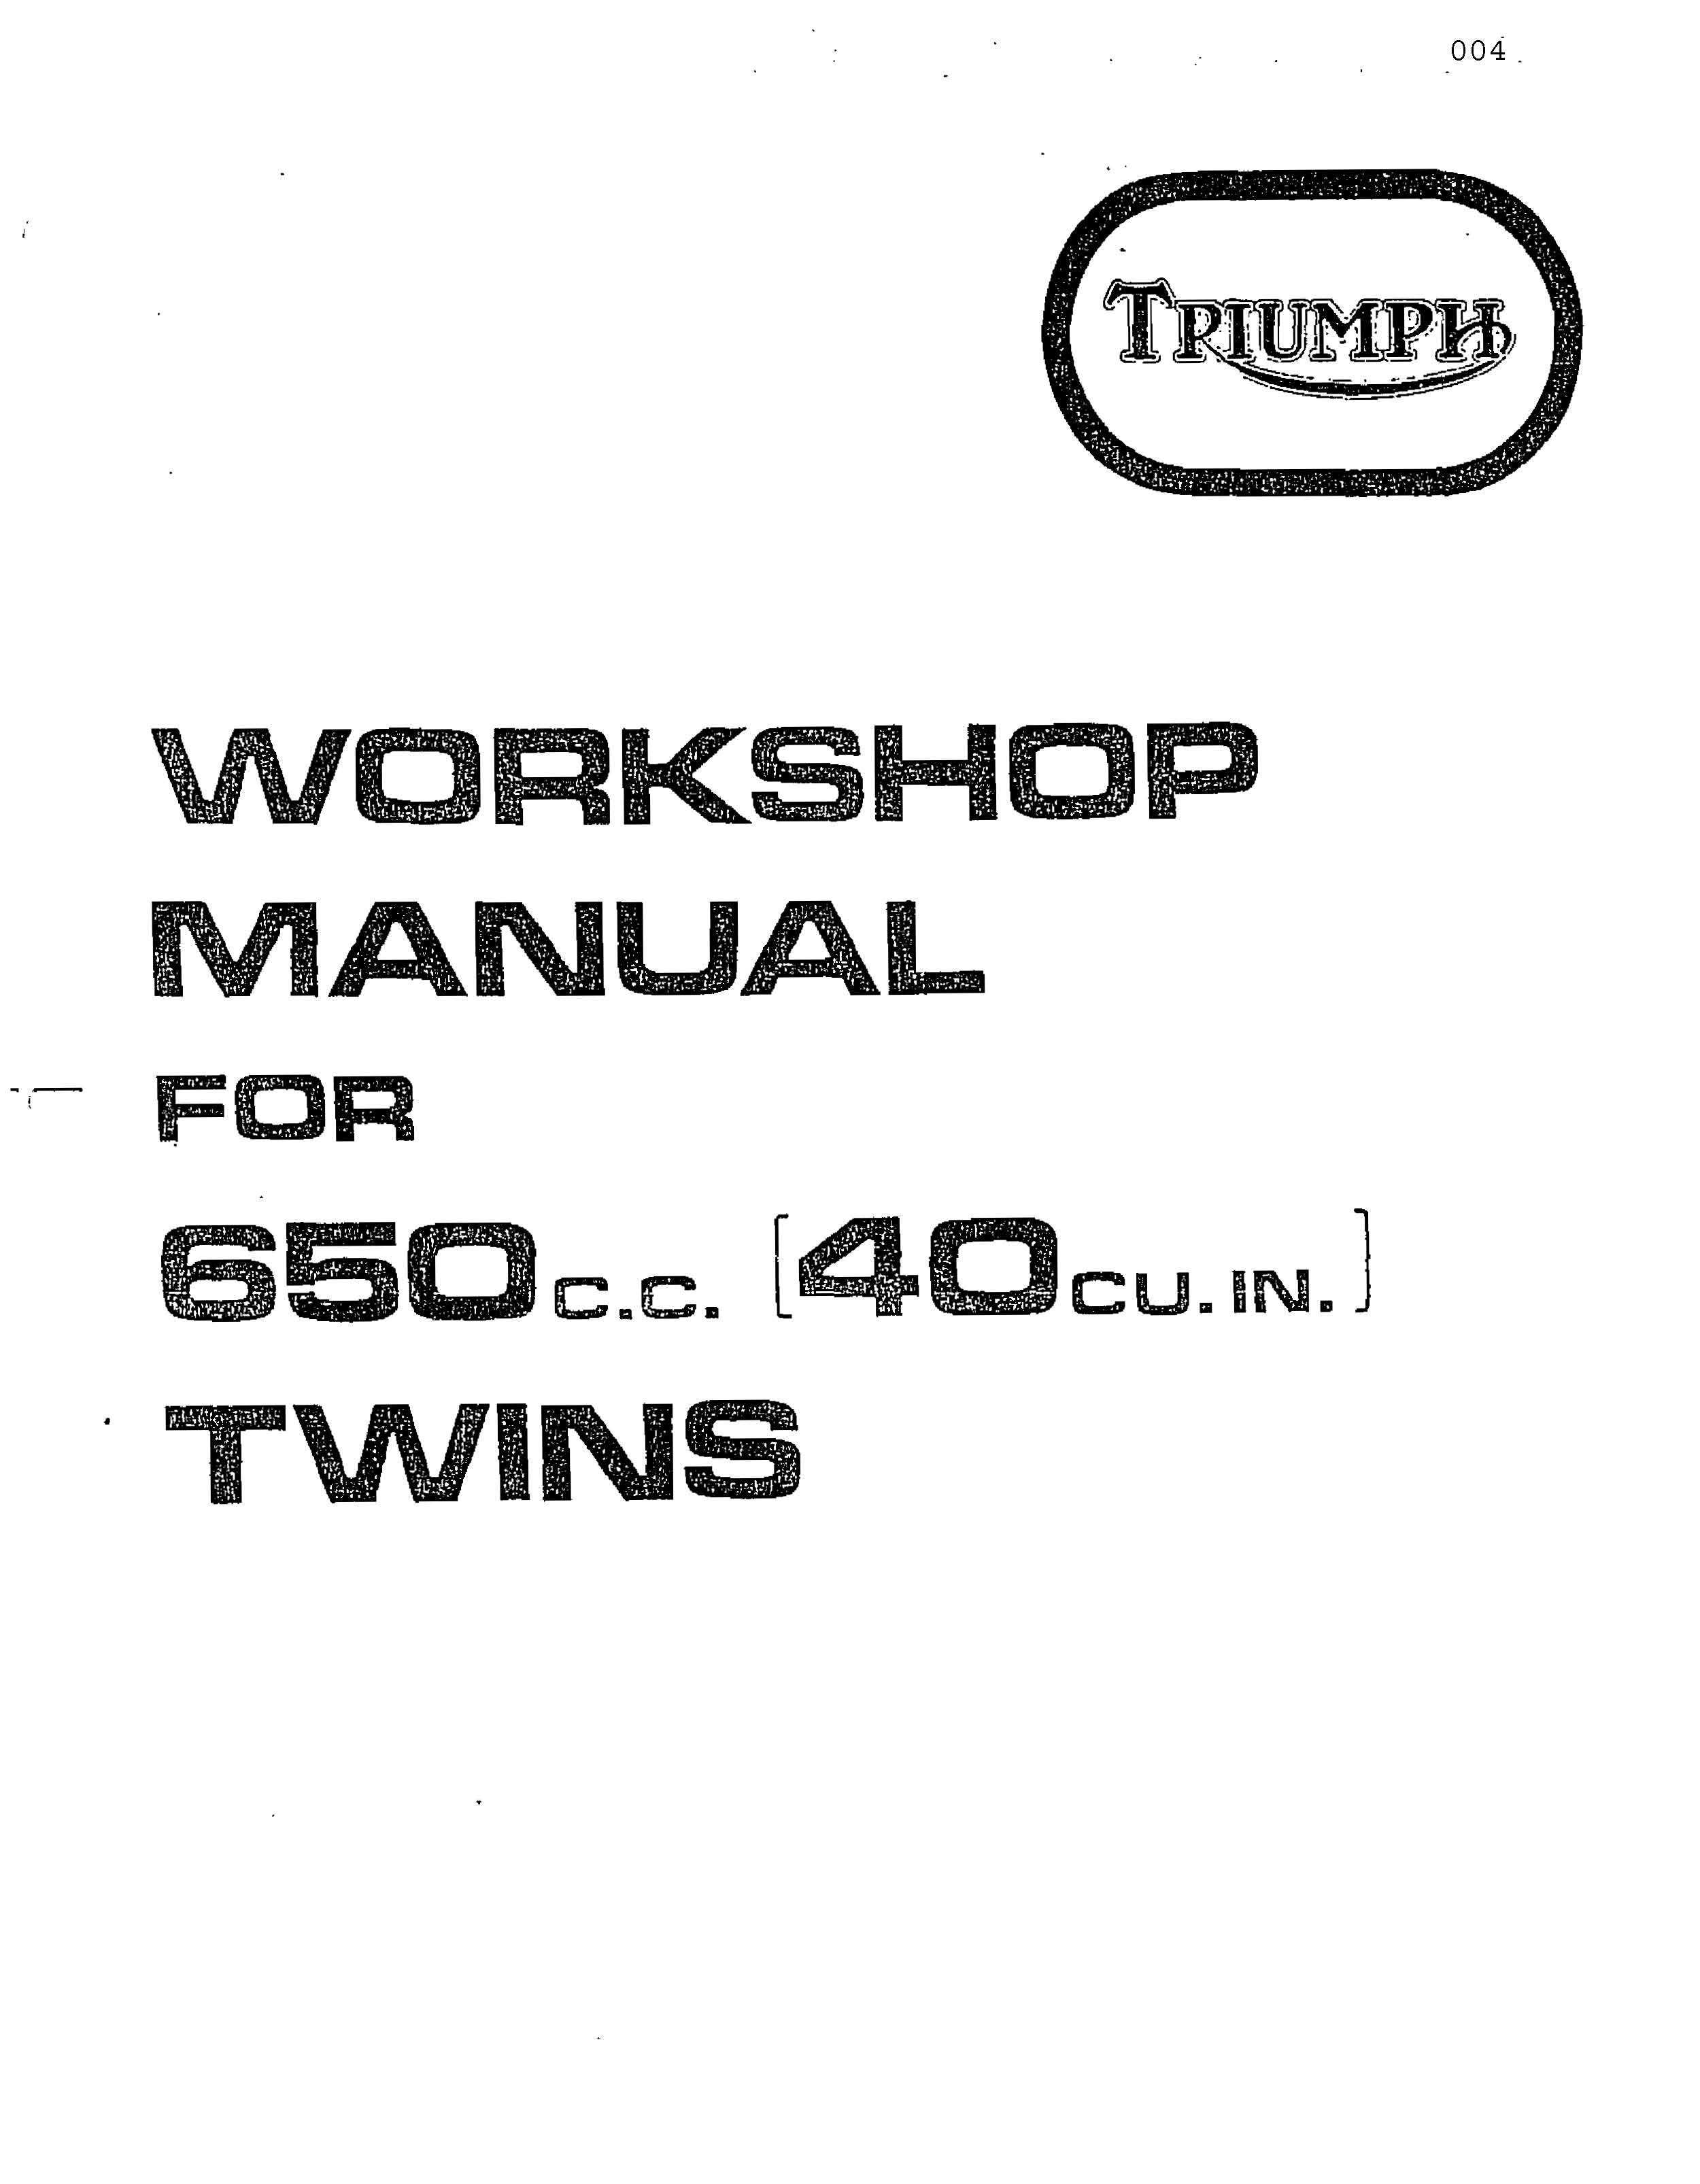 Wiring Diagrams furthermore 1971 Triumph Bonneville Wiring Harness likewise Manual De Servico Titan 150 Mix besides Showthread furthermore Boyer Ignition Systems. on triumph t120r 650 wiring diagram